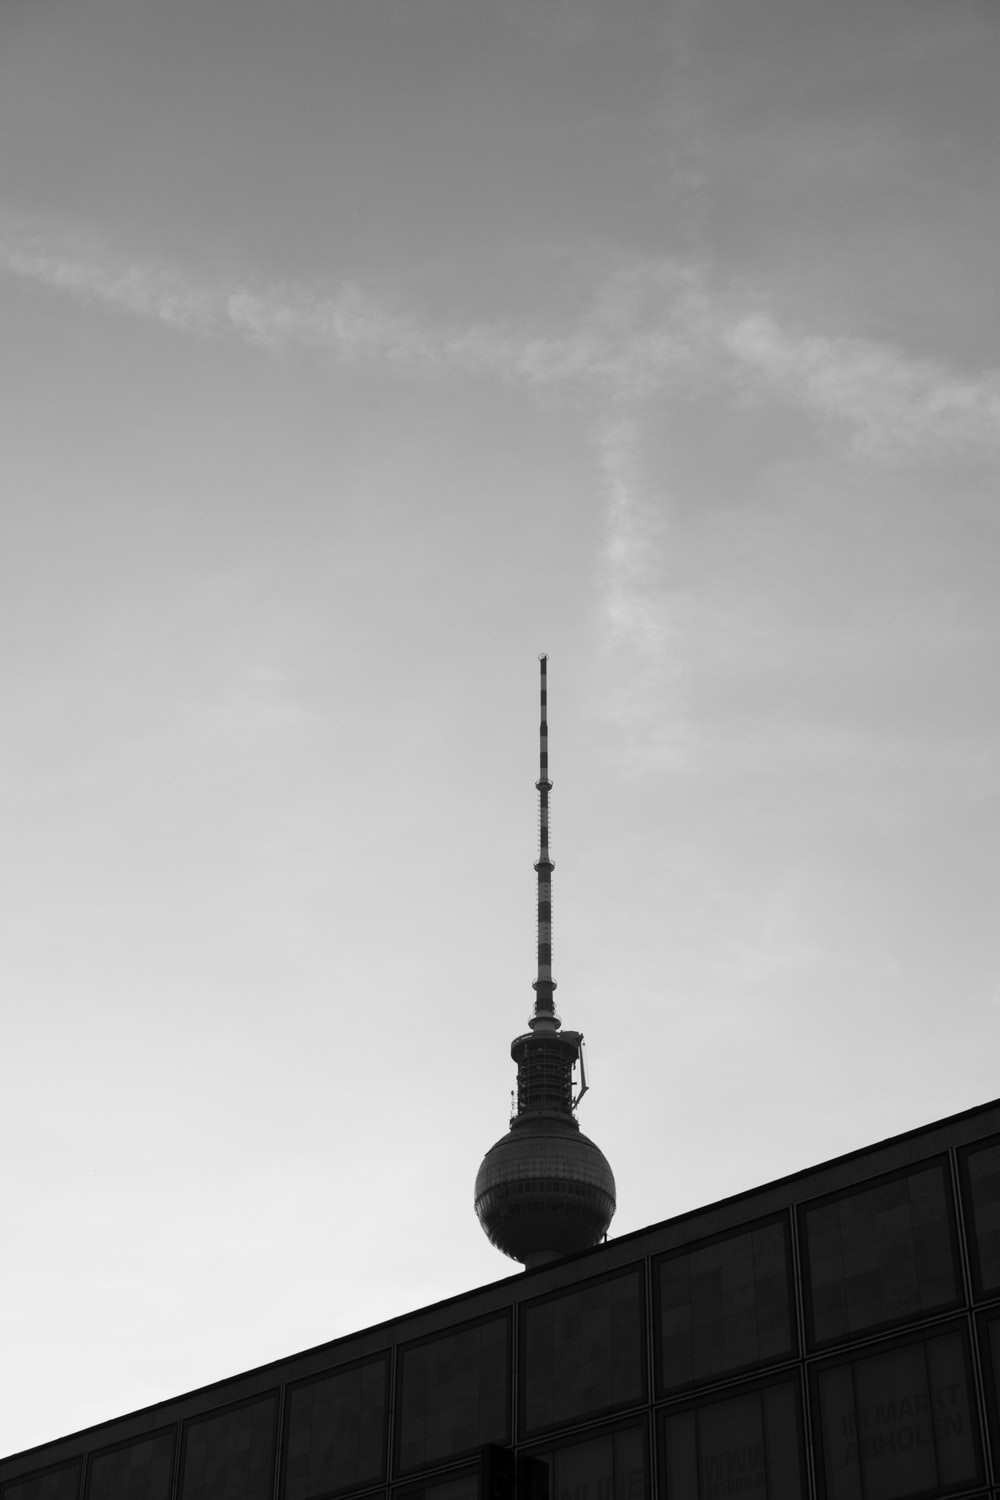 grayscale photo of tower under cloudy sky